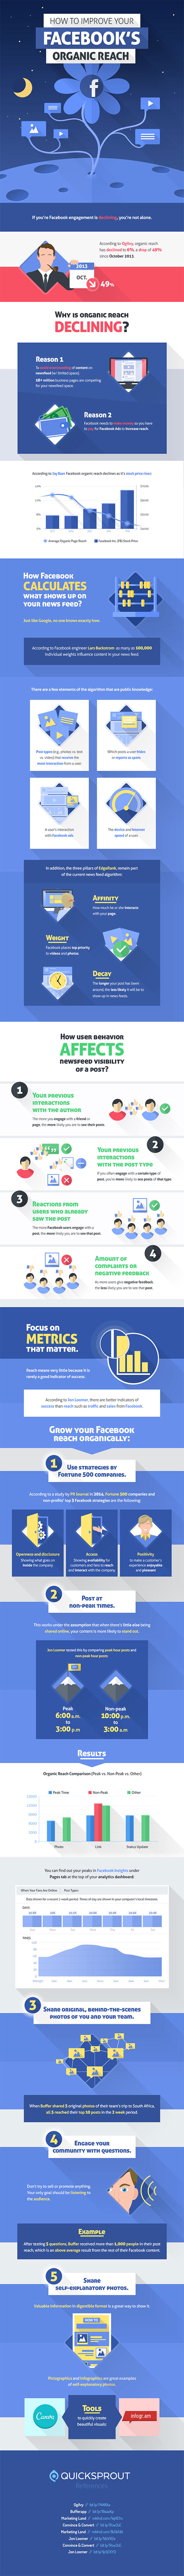 Improve FB reach infographic